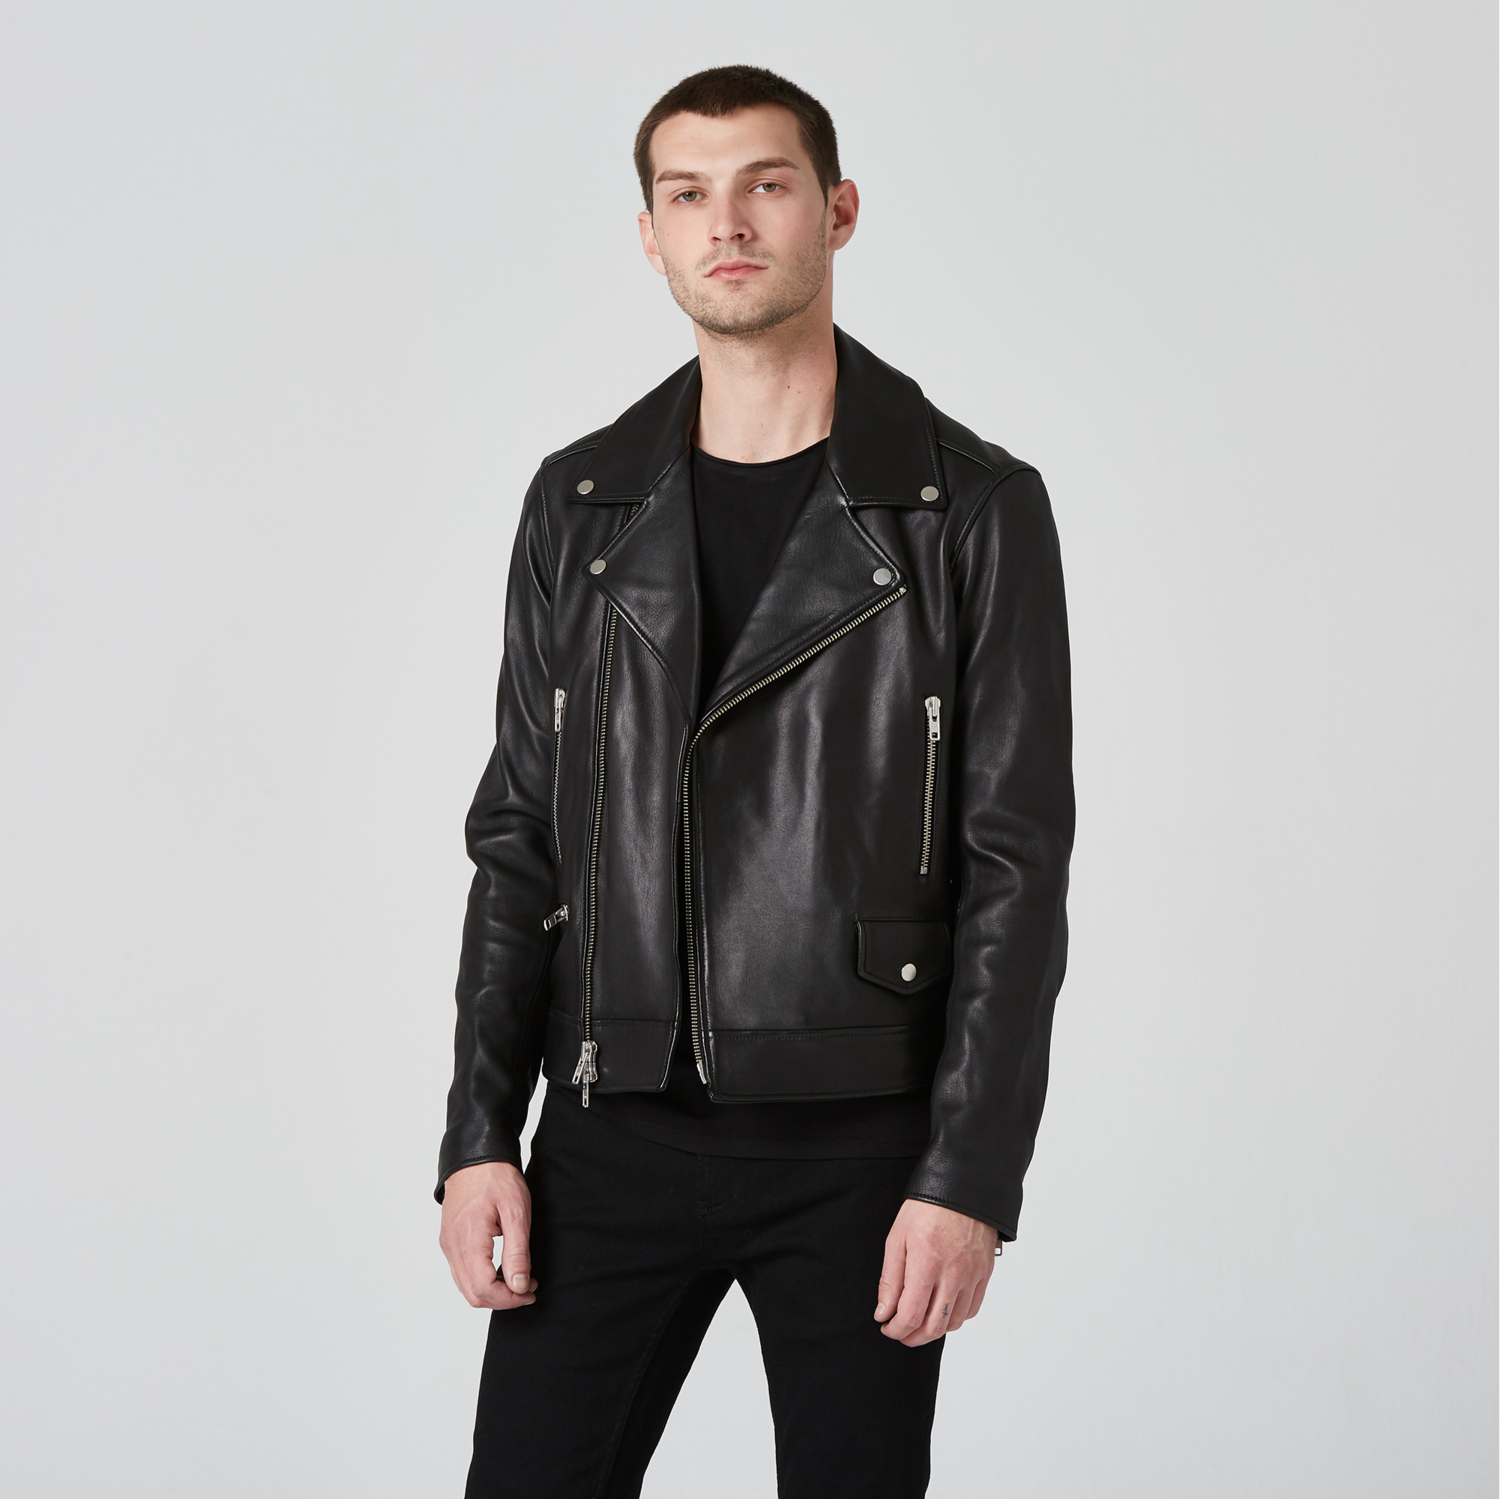 c39759a94 [Collection] Mens Leather Moto Jacket in Black